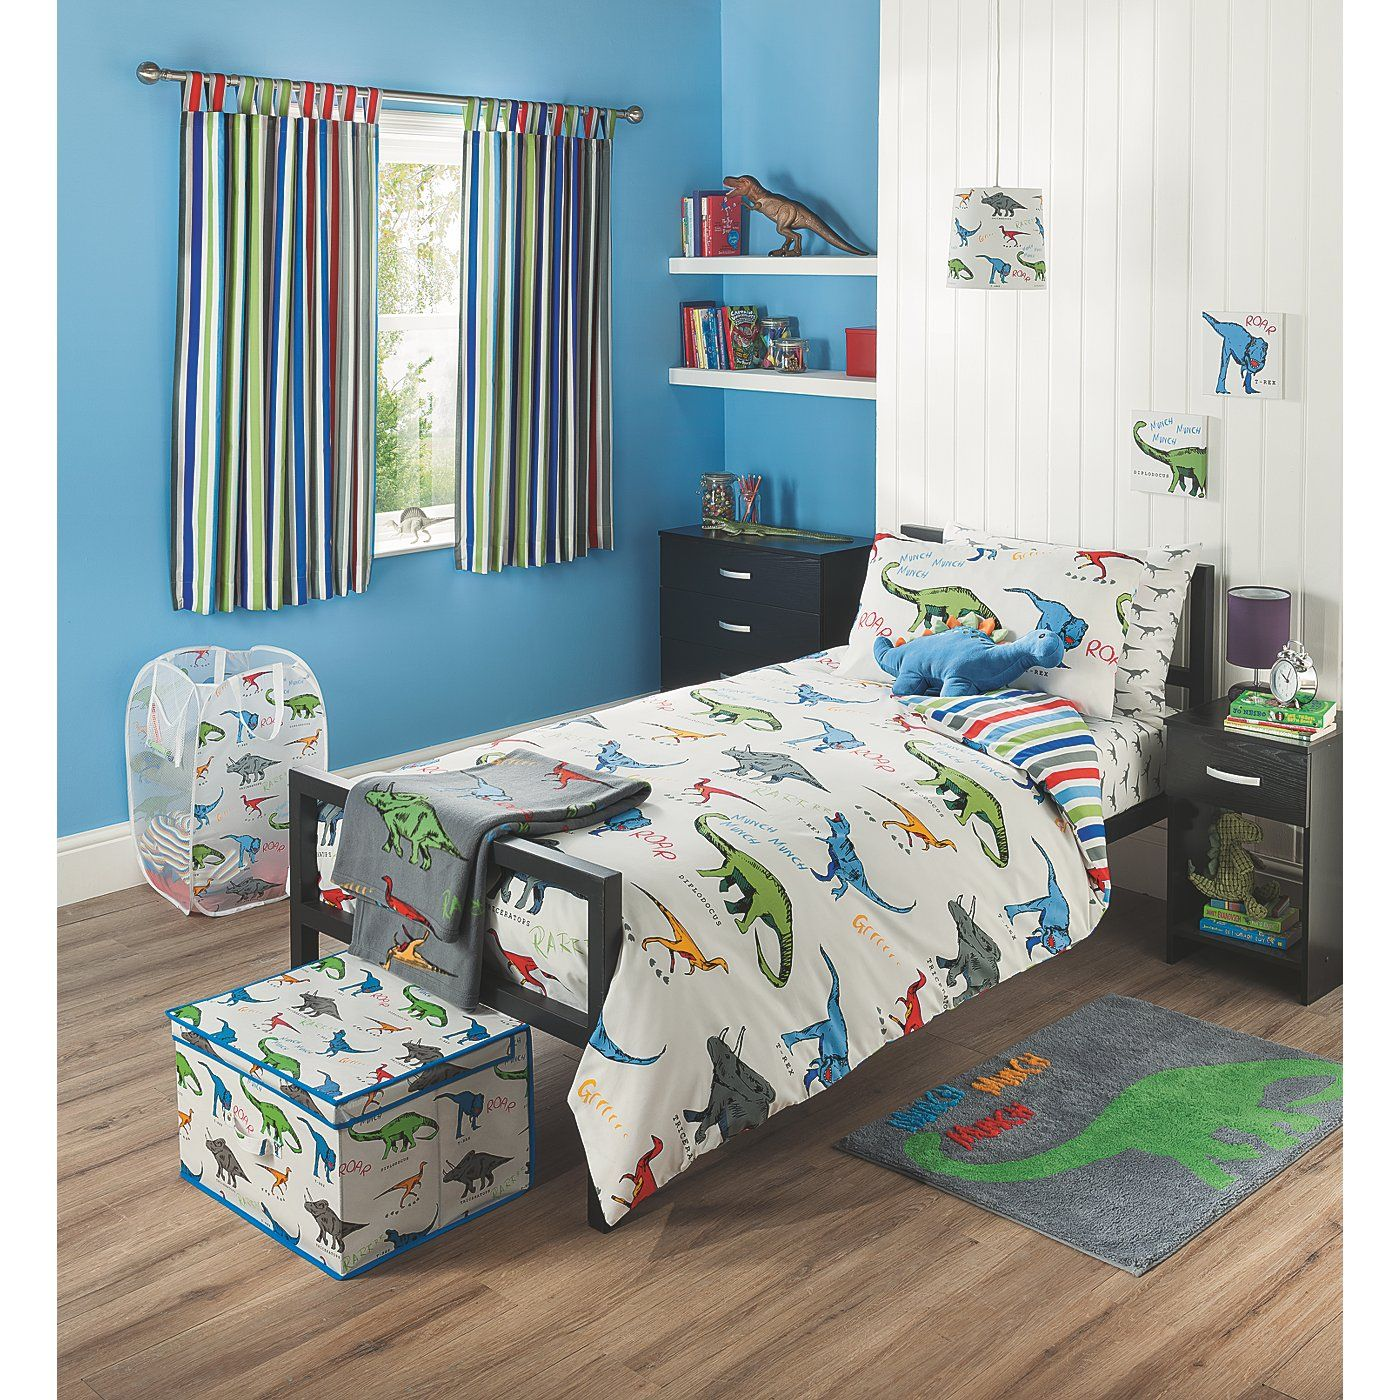 Best Buy George Home Dinosaurs Bedroom Range From Our Bedding This Month